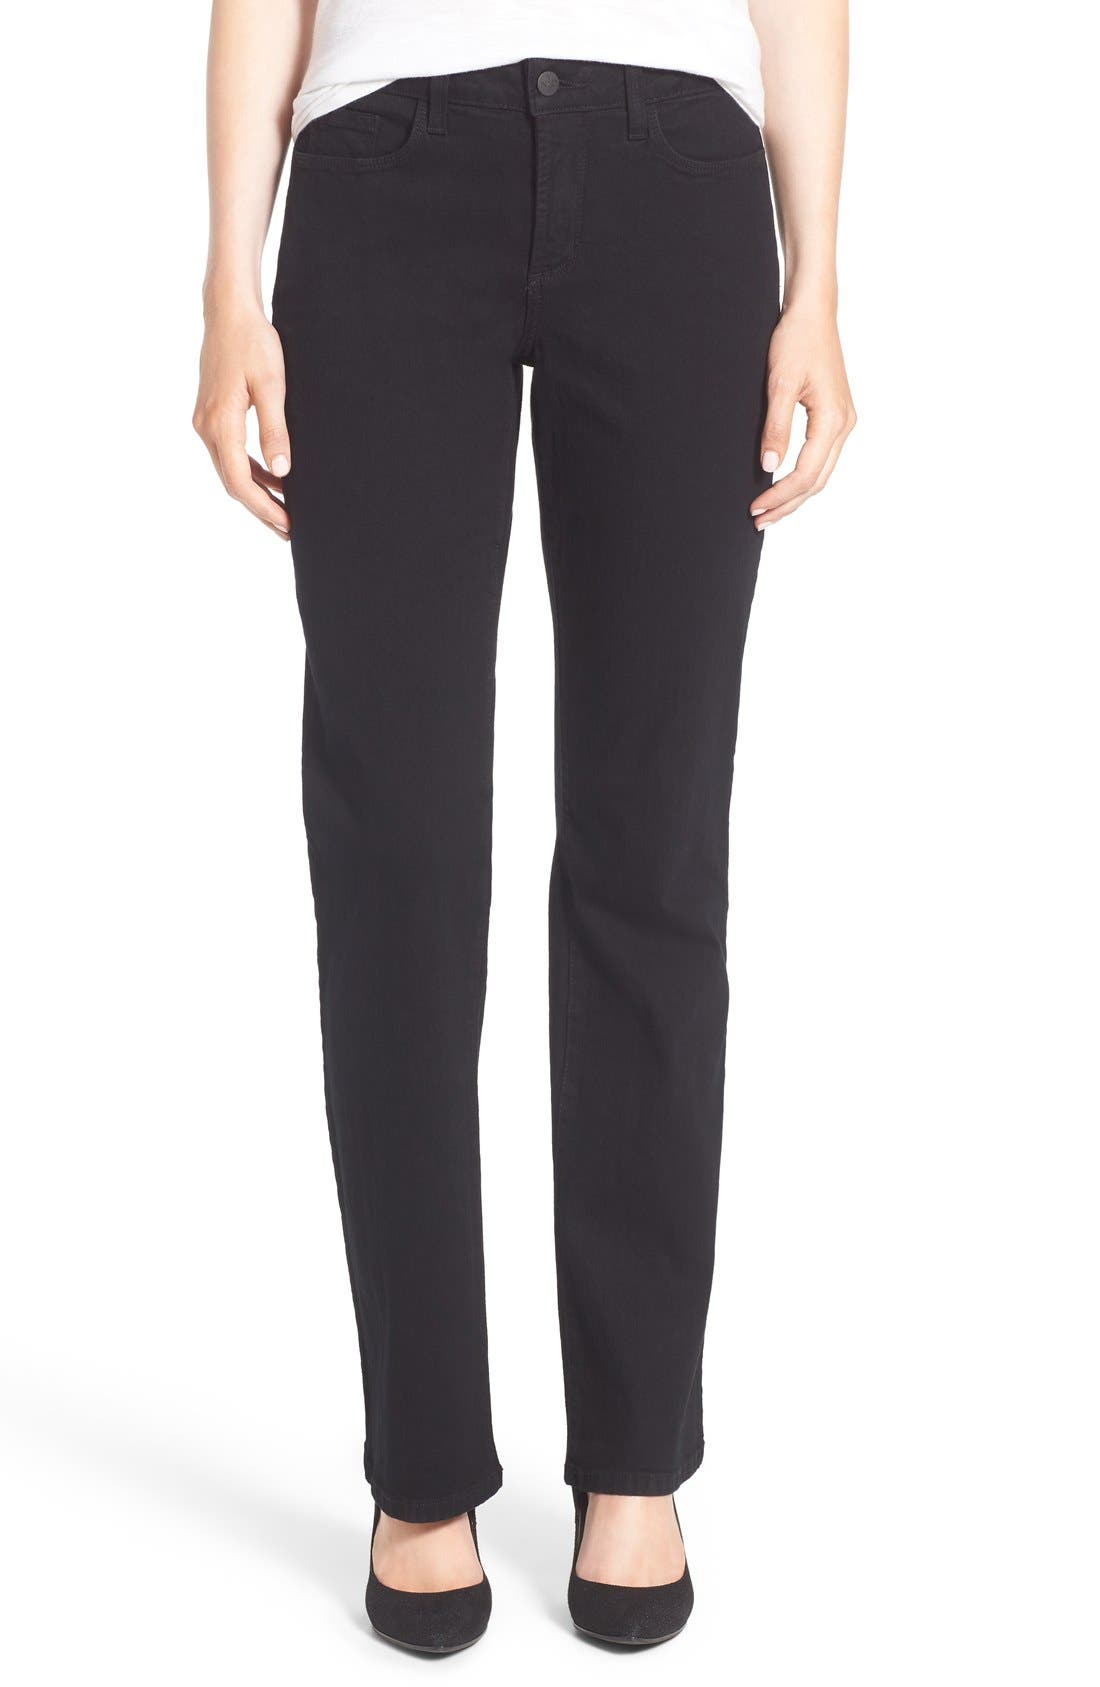 Main Image - NYDJ Barbara Stretch Bootcut Jeans (Regular & Petite)